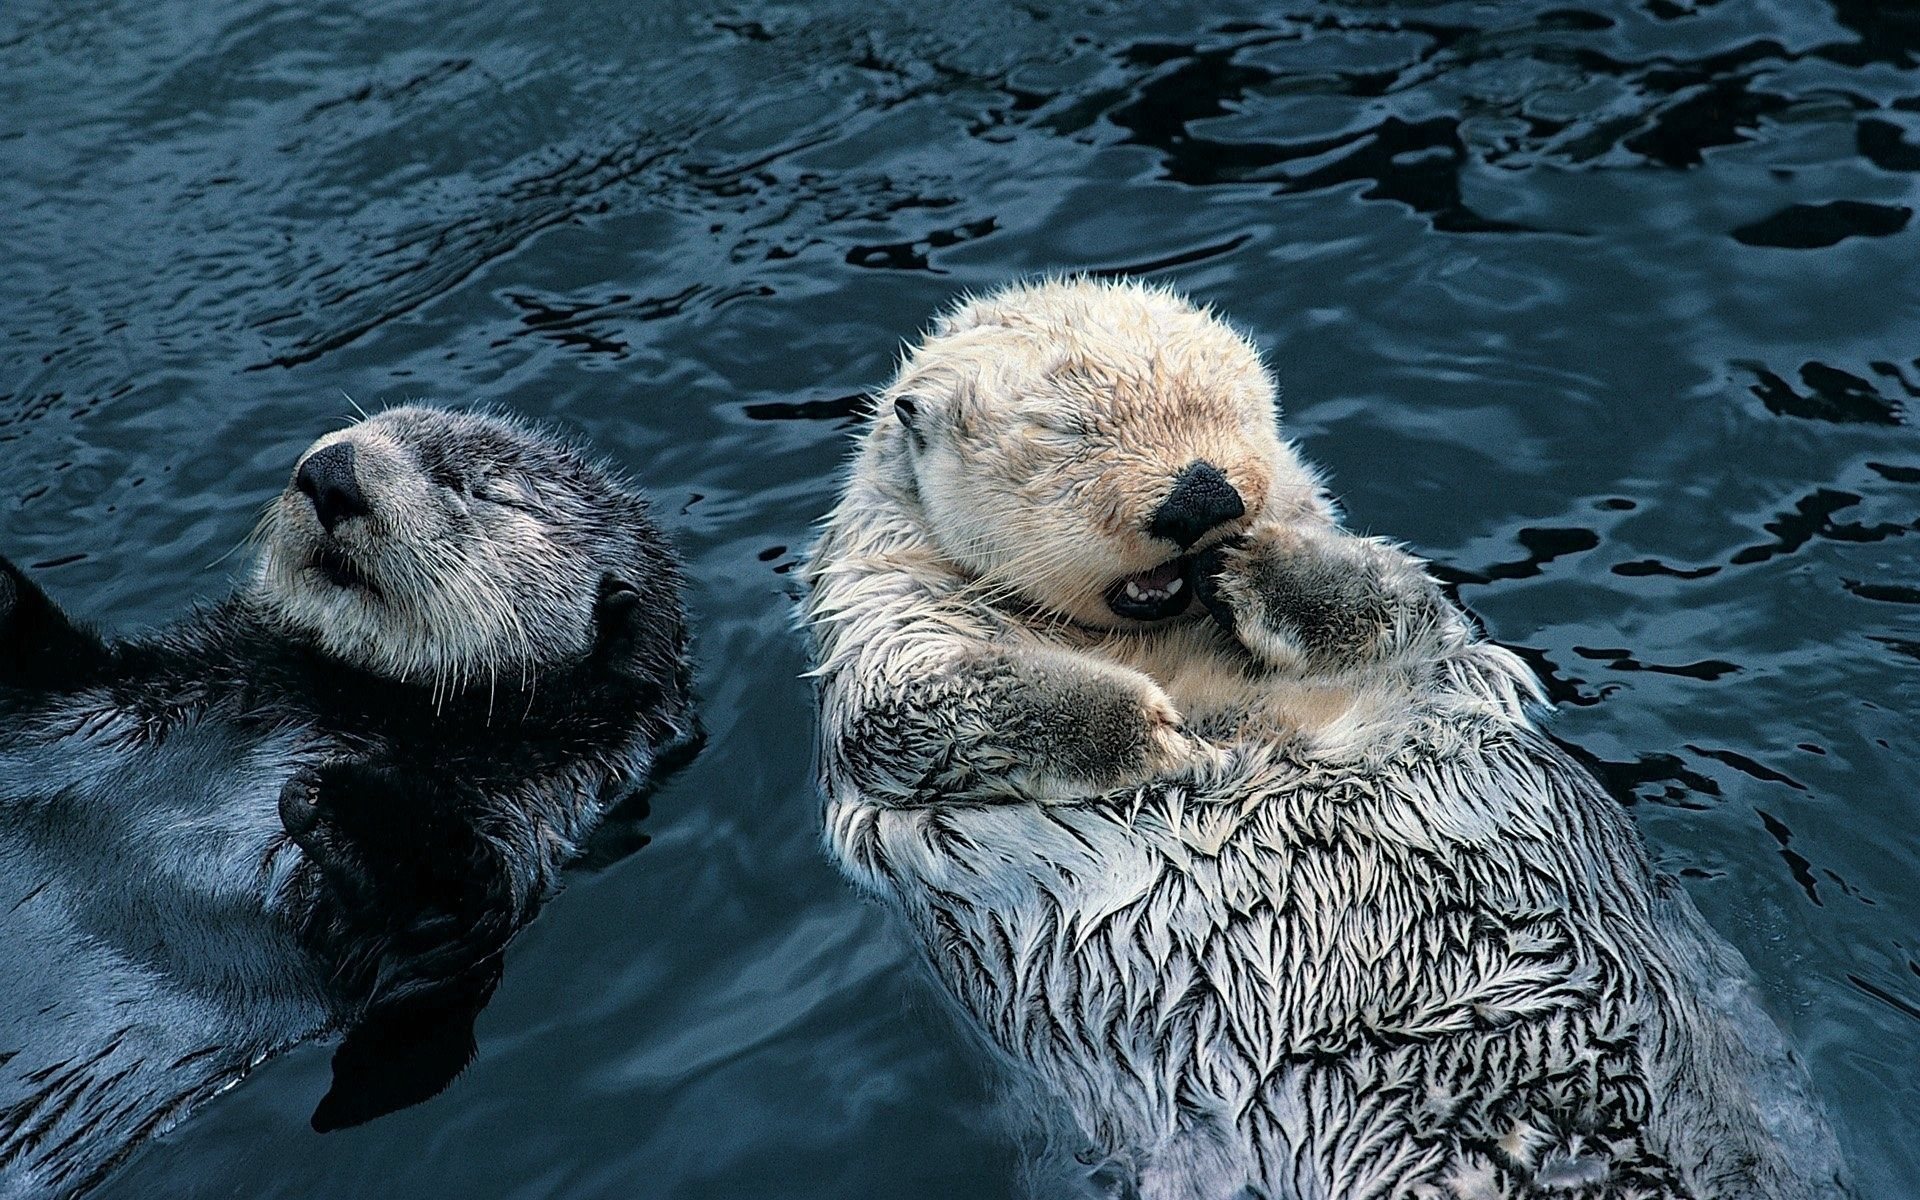 148416 download wallpaper Animals, Couple, Pair, Grass, Dirty, Water, To Swim, Swim, Otters screensavers and pictures for free